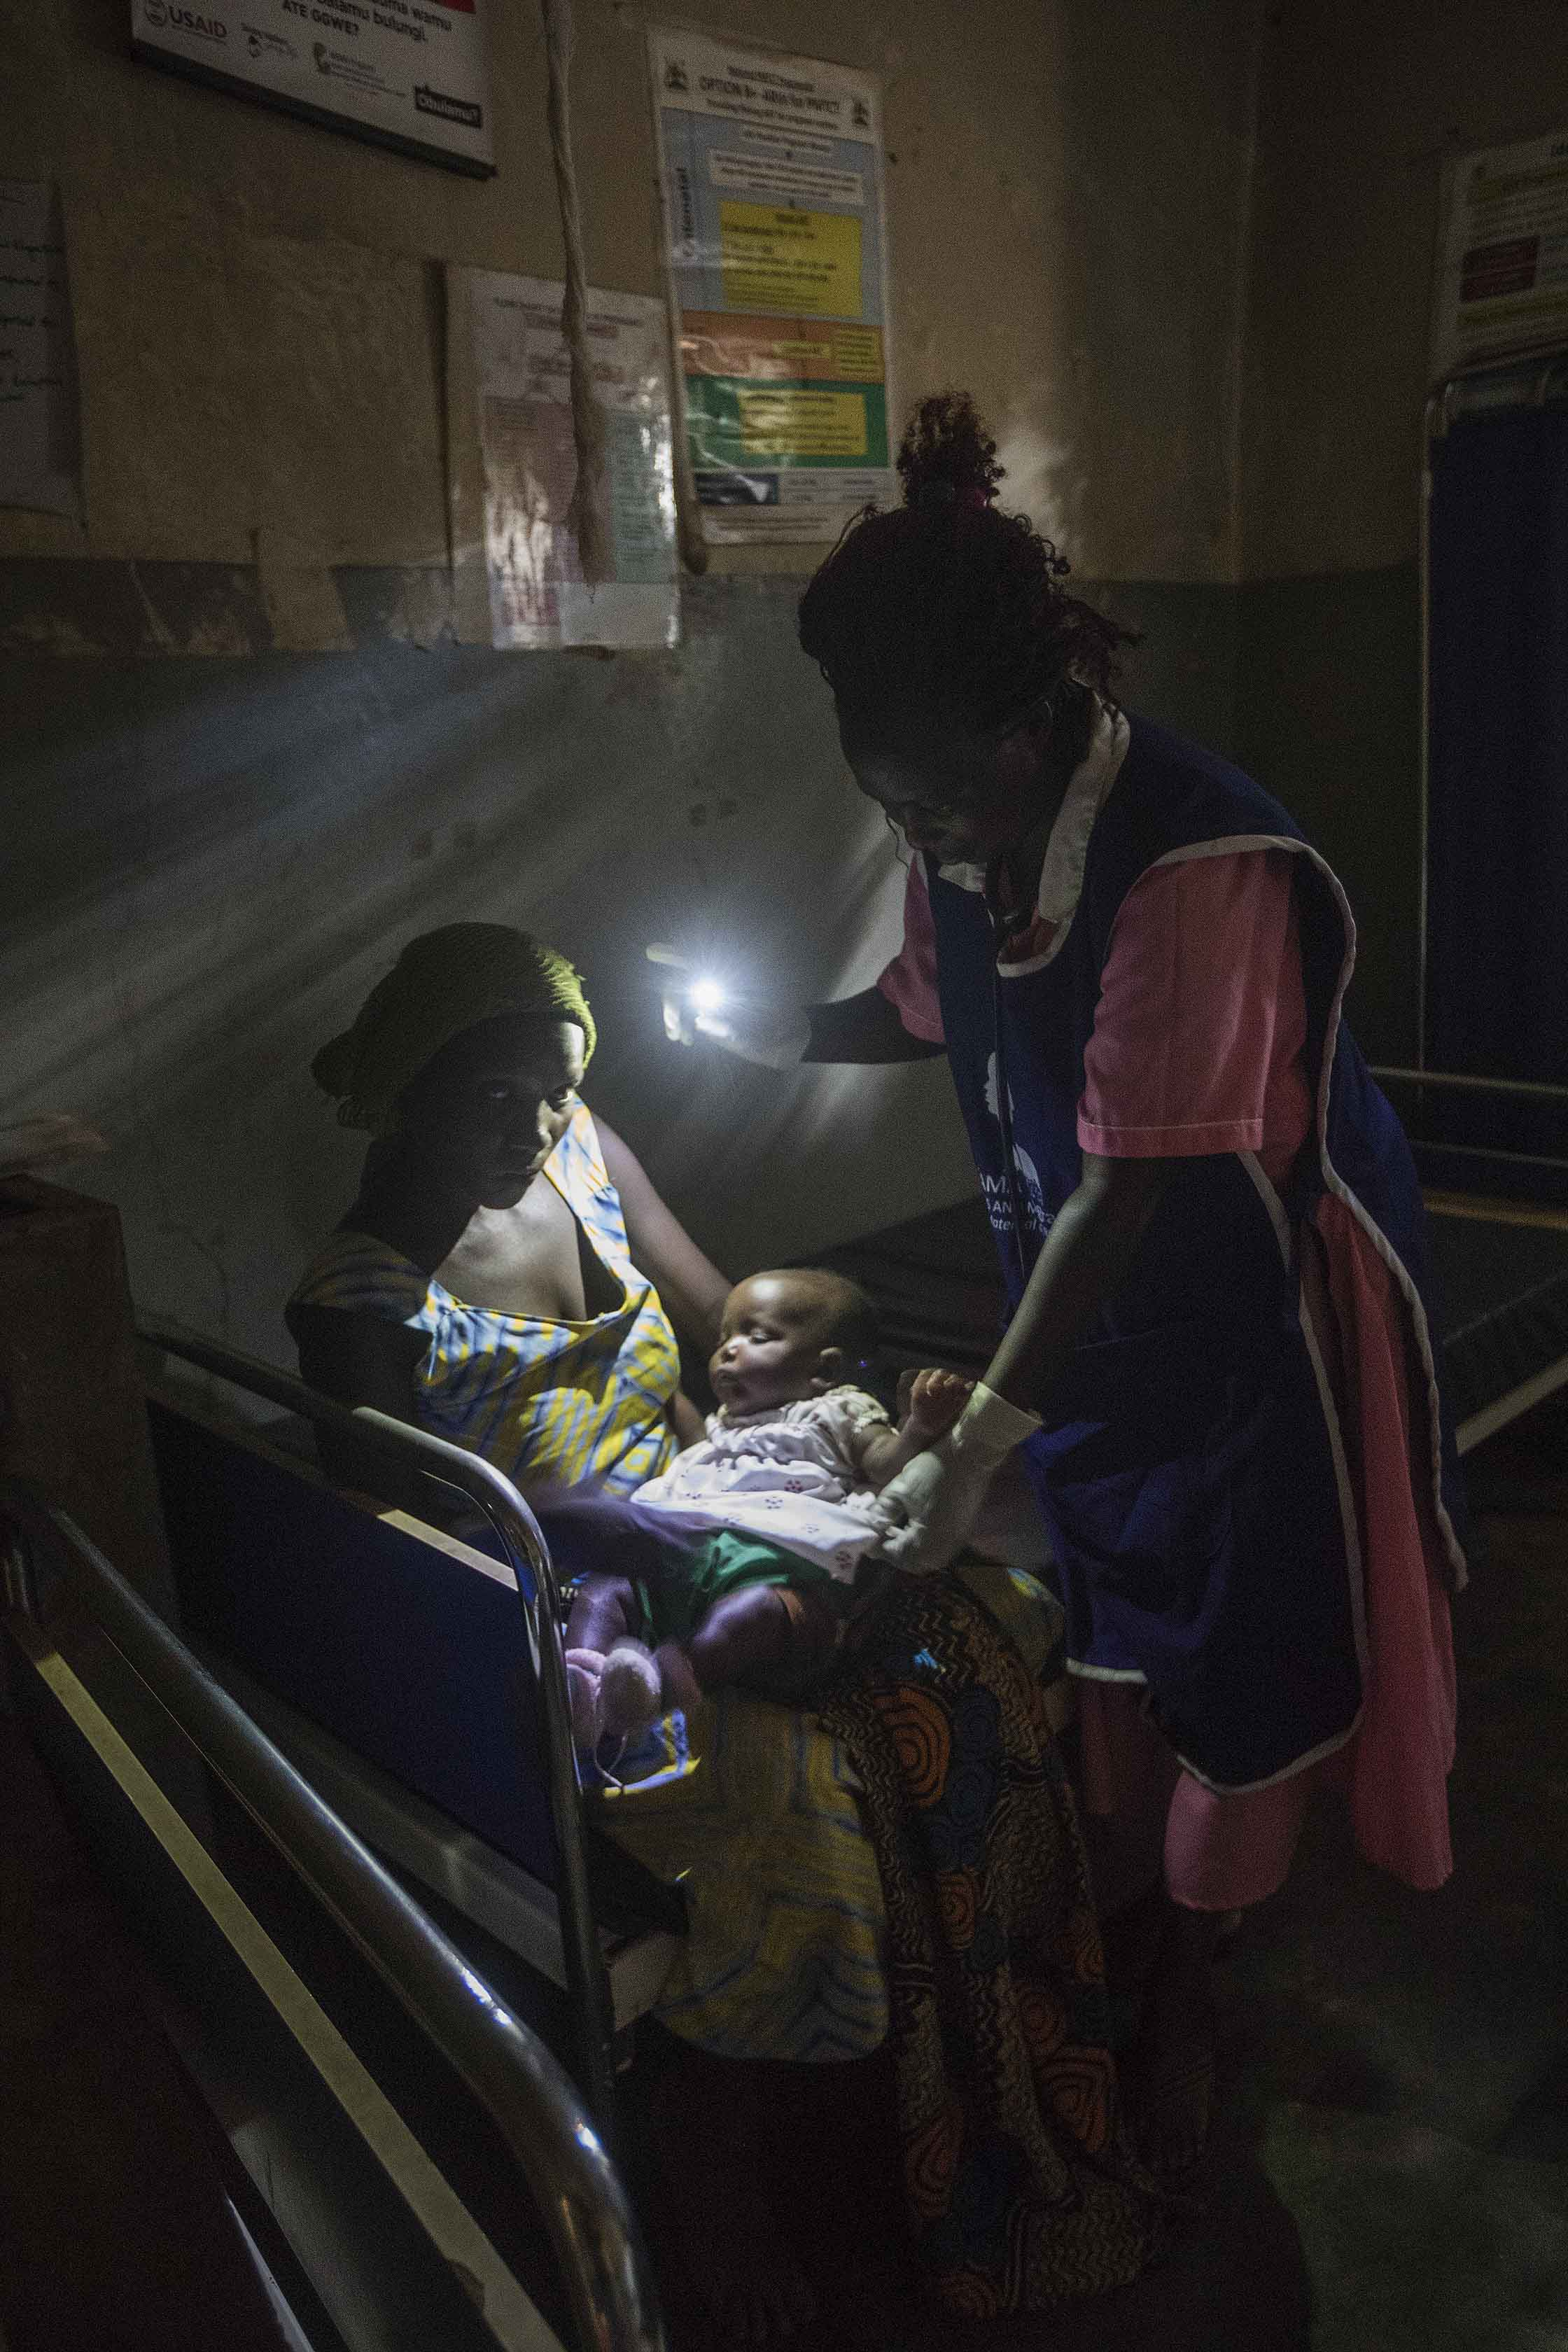 A midwife examining a child using a light from her cell phone